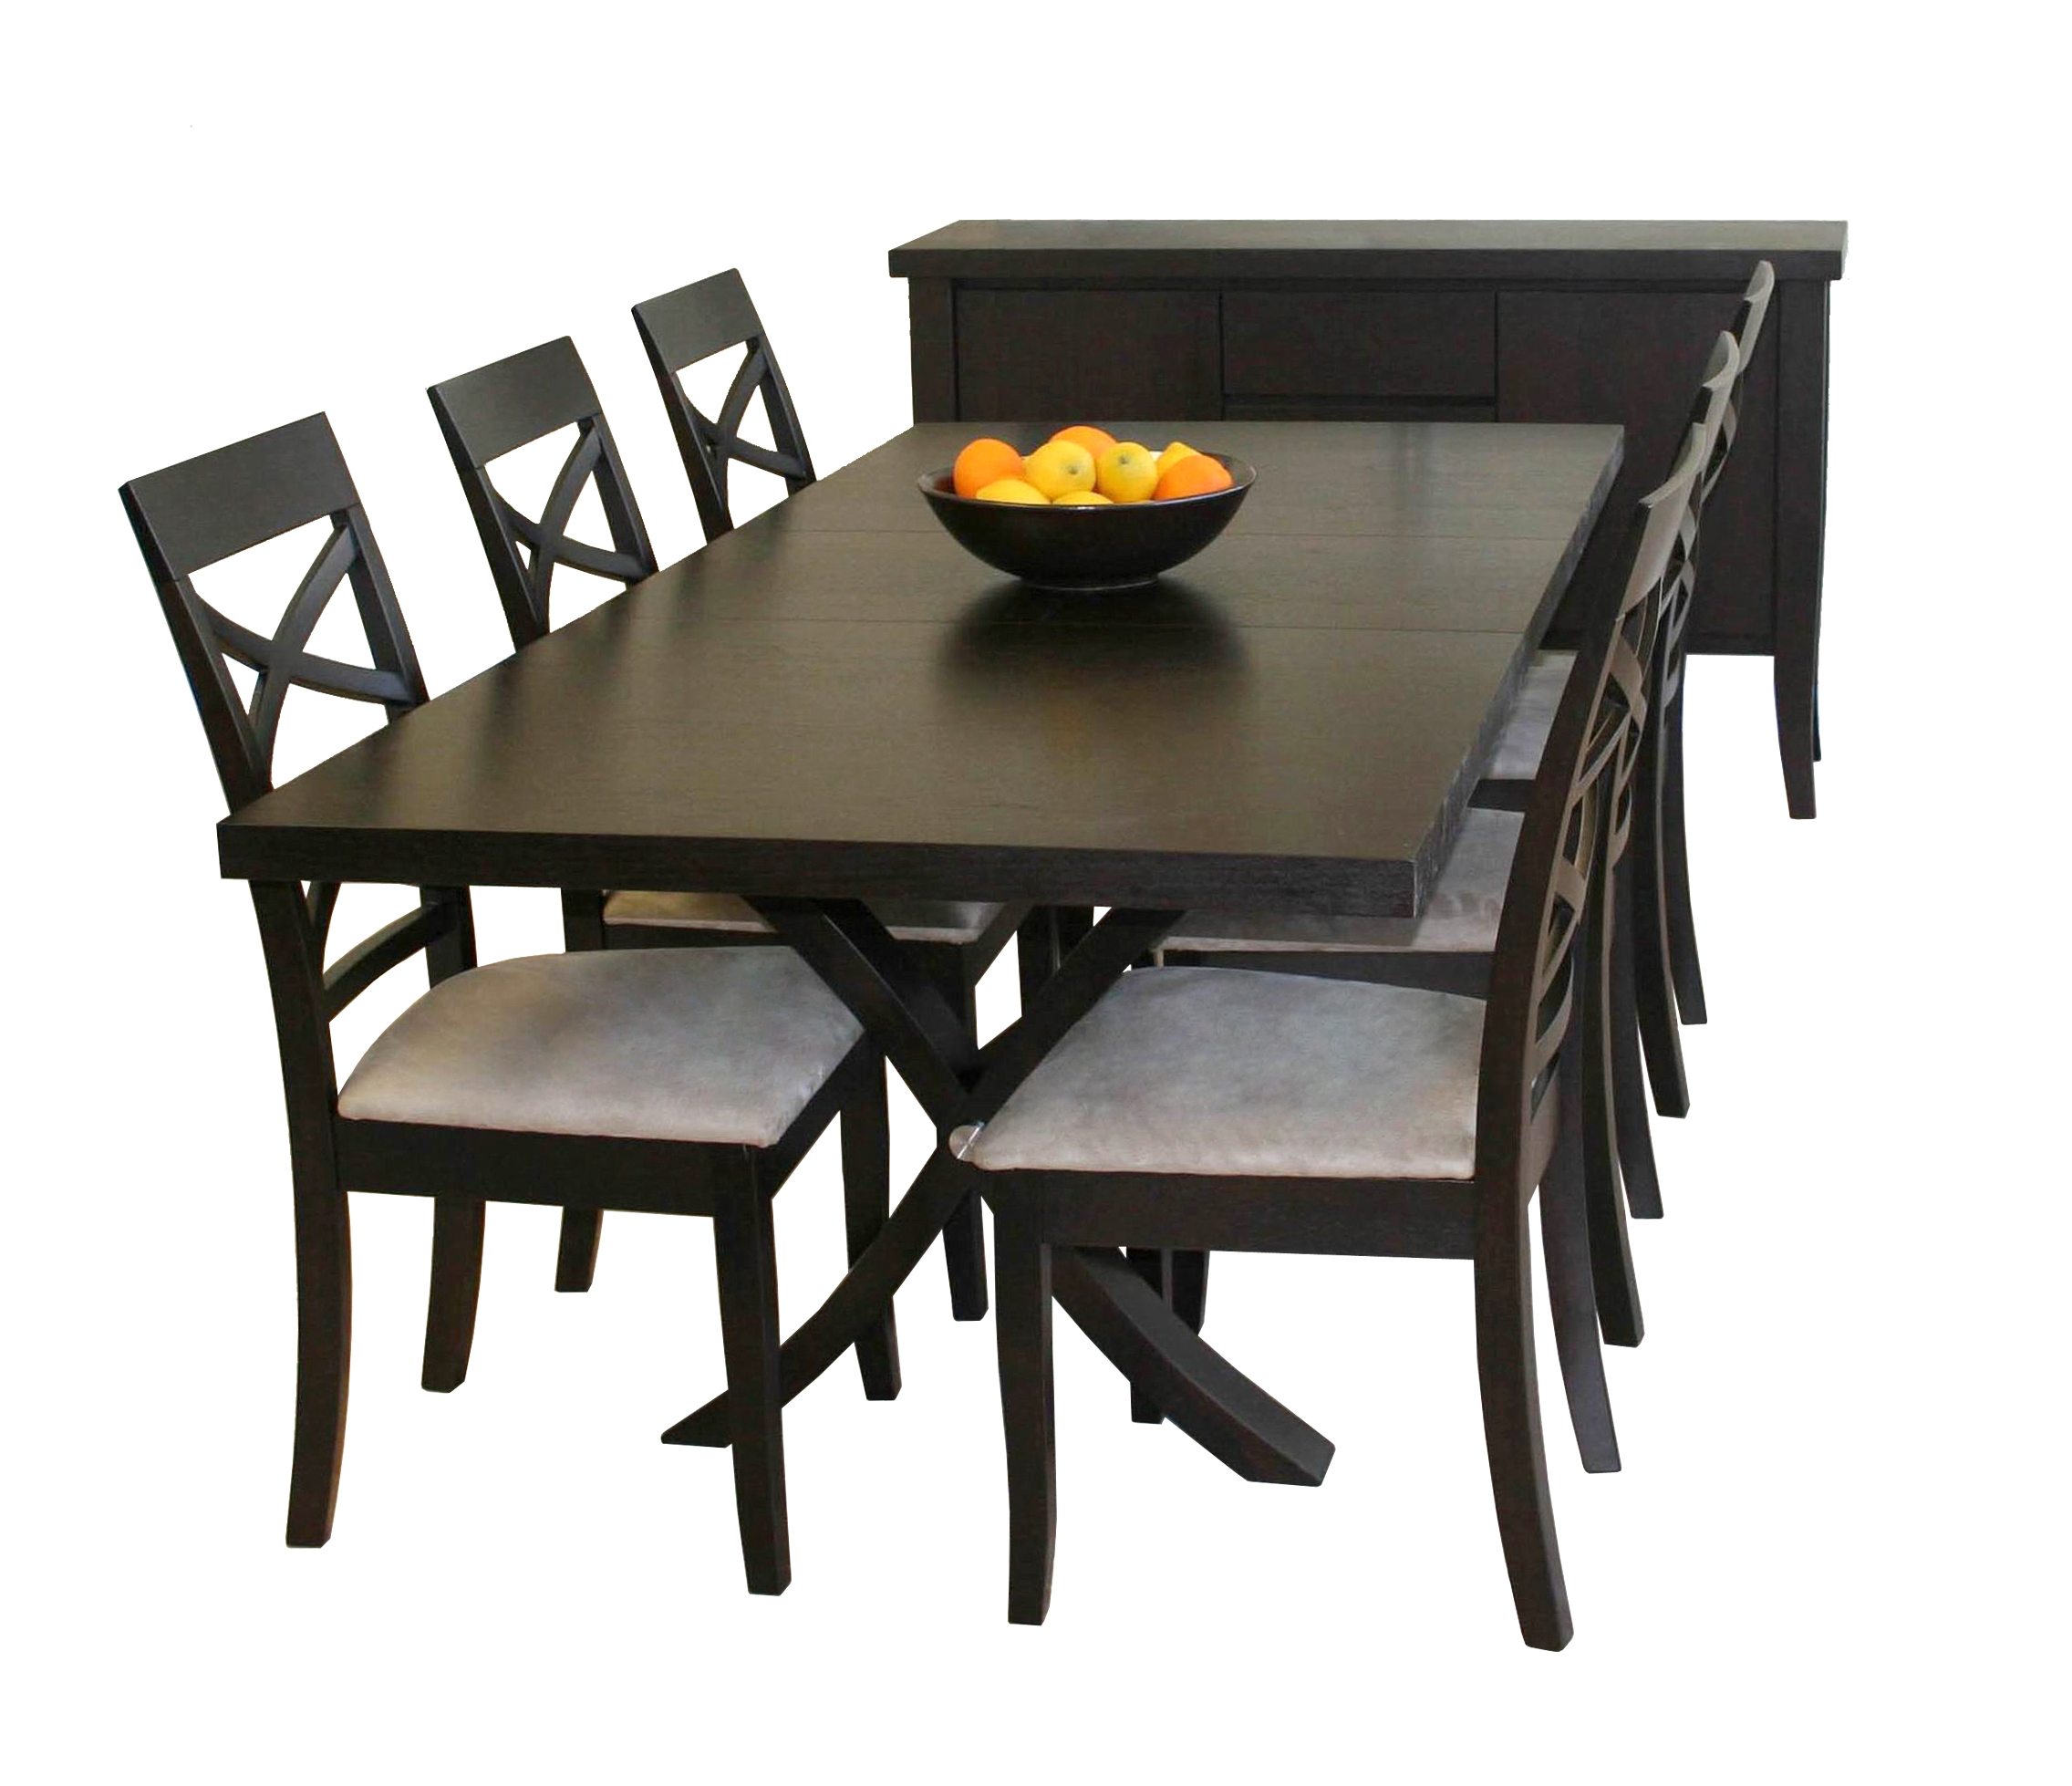 Furniture Chandigarh Panchkula Haryana Trendz Wooden Garden Furniture Wrought Iron Garden